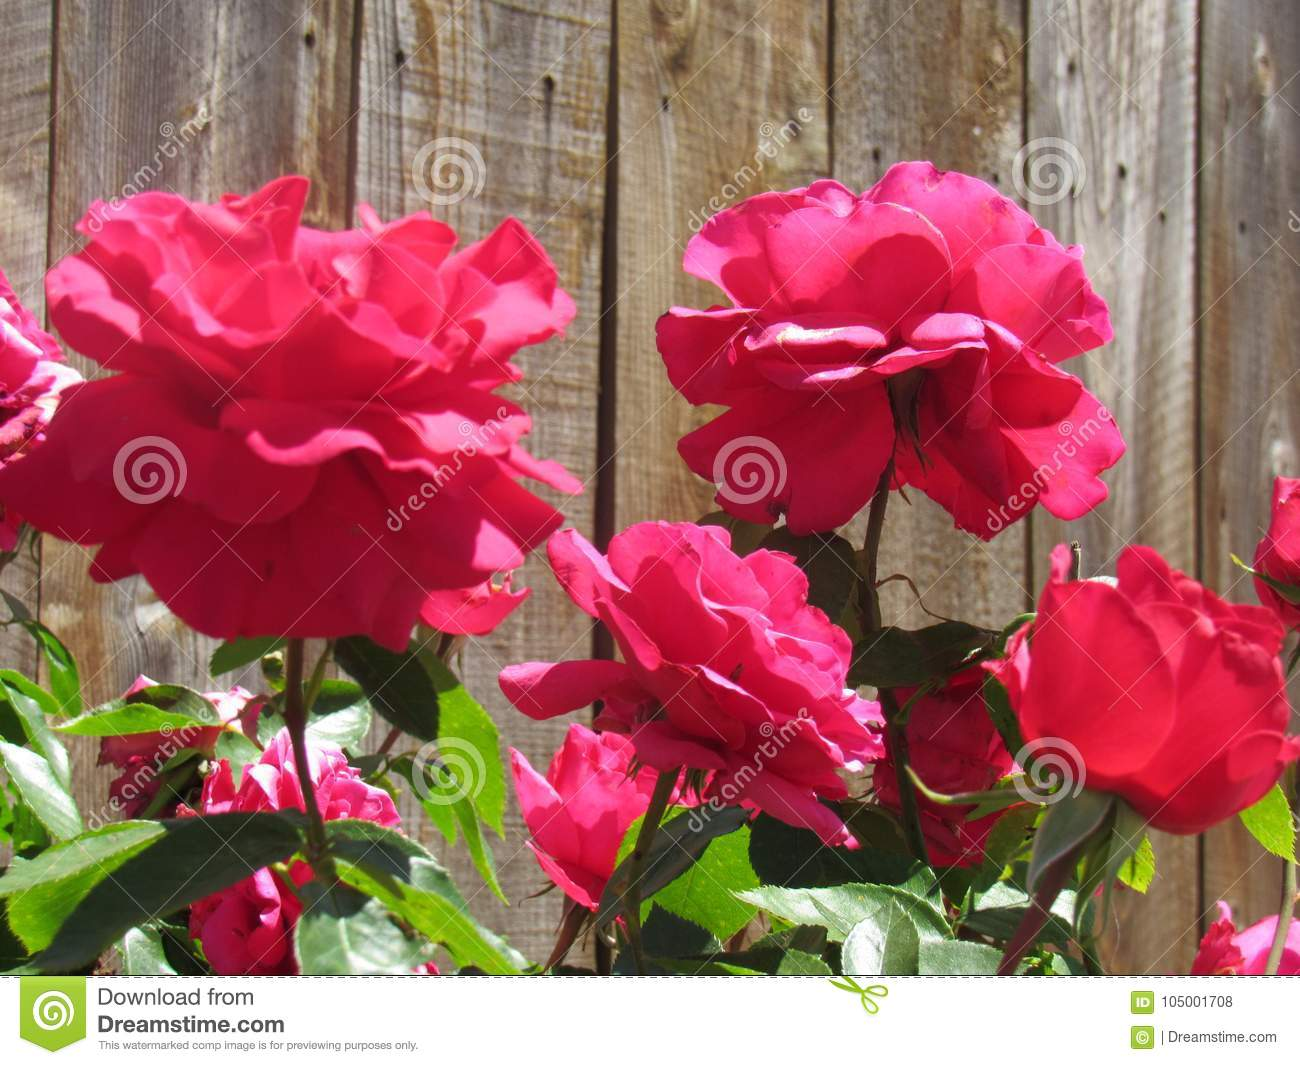 Pretty red flowers stock photo image of fence flowers 105001708 download pretty red flowers stock photo image of fence flowers 105001708 mightylinksfo